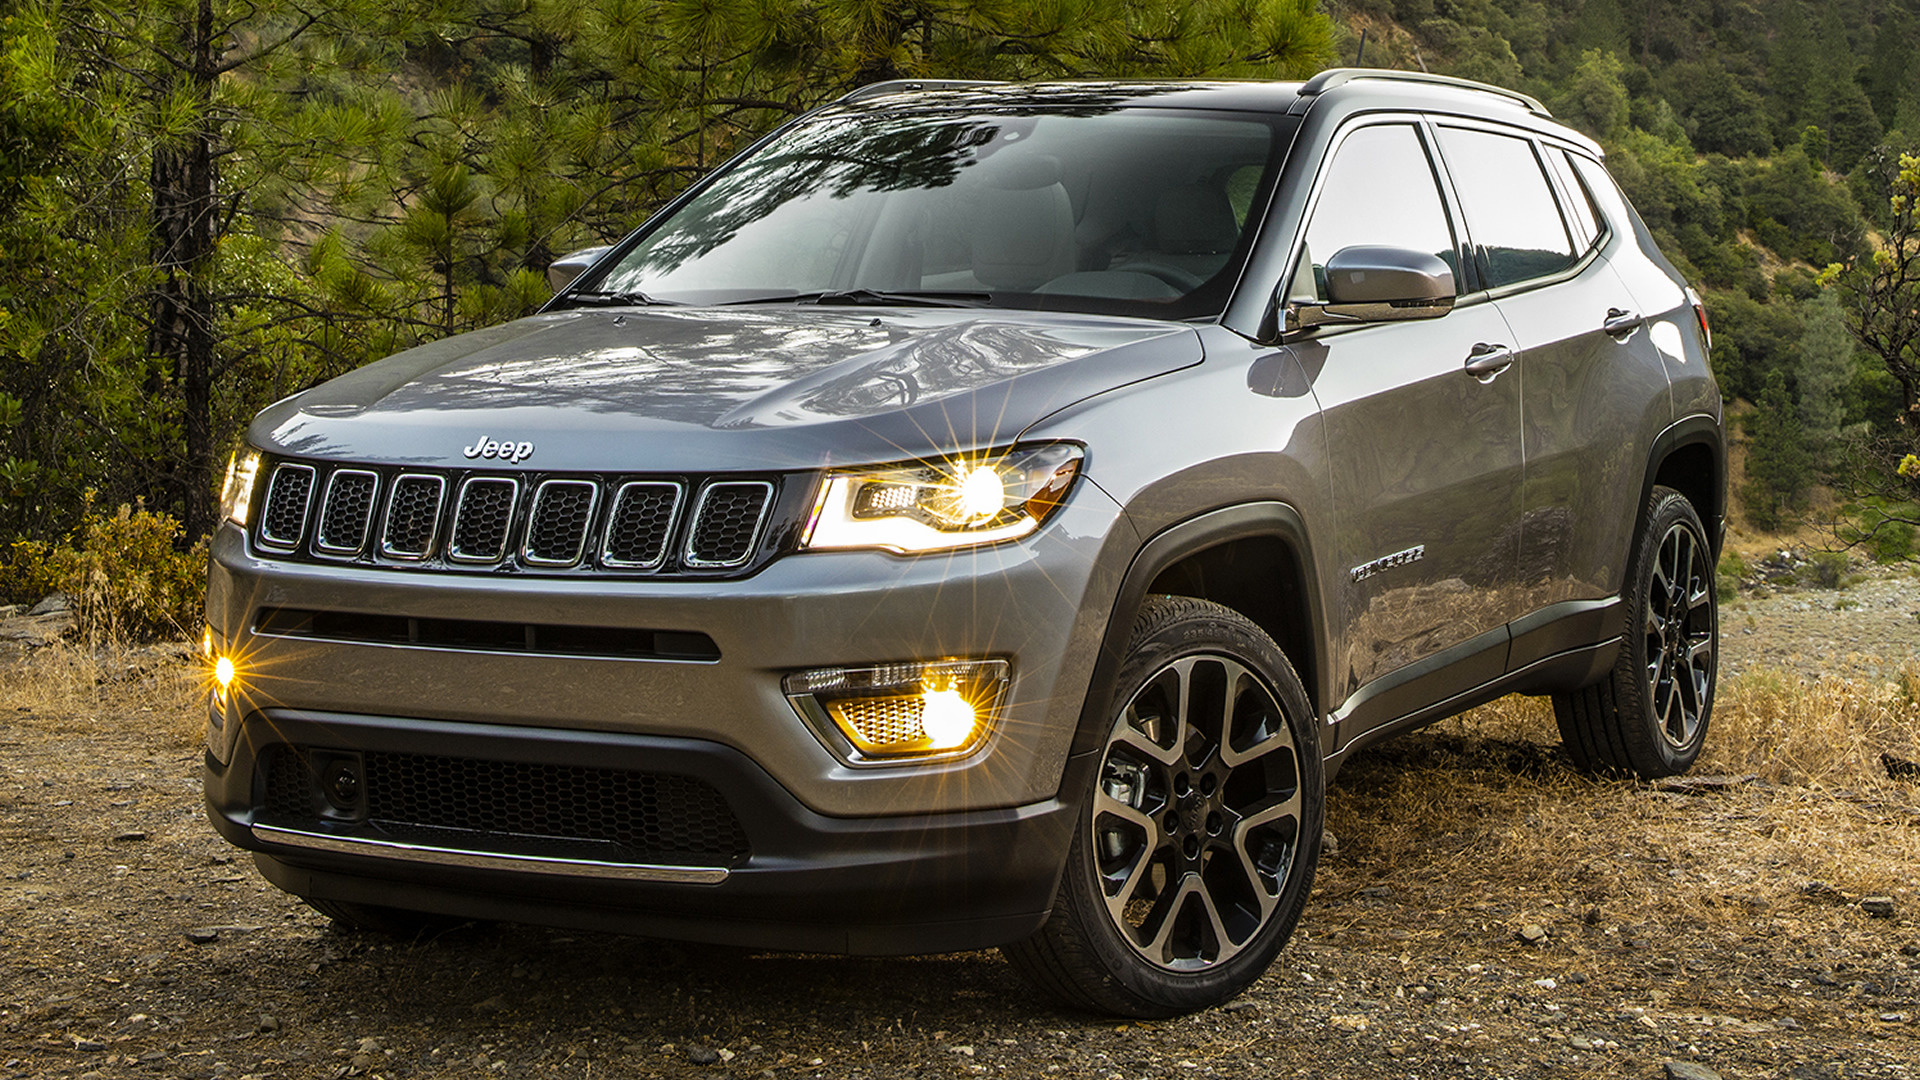 Jeep Compass Limited (2017) Wallpapers and HD Images - Car Pixel